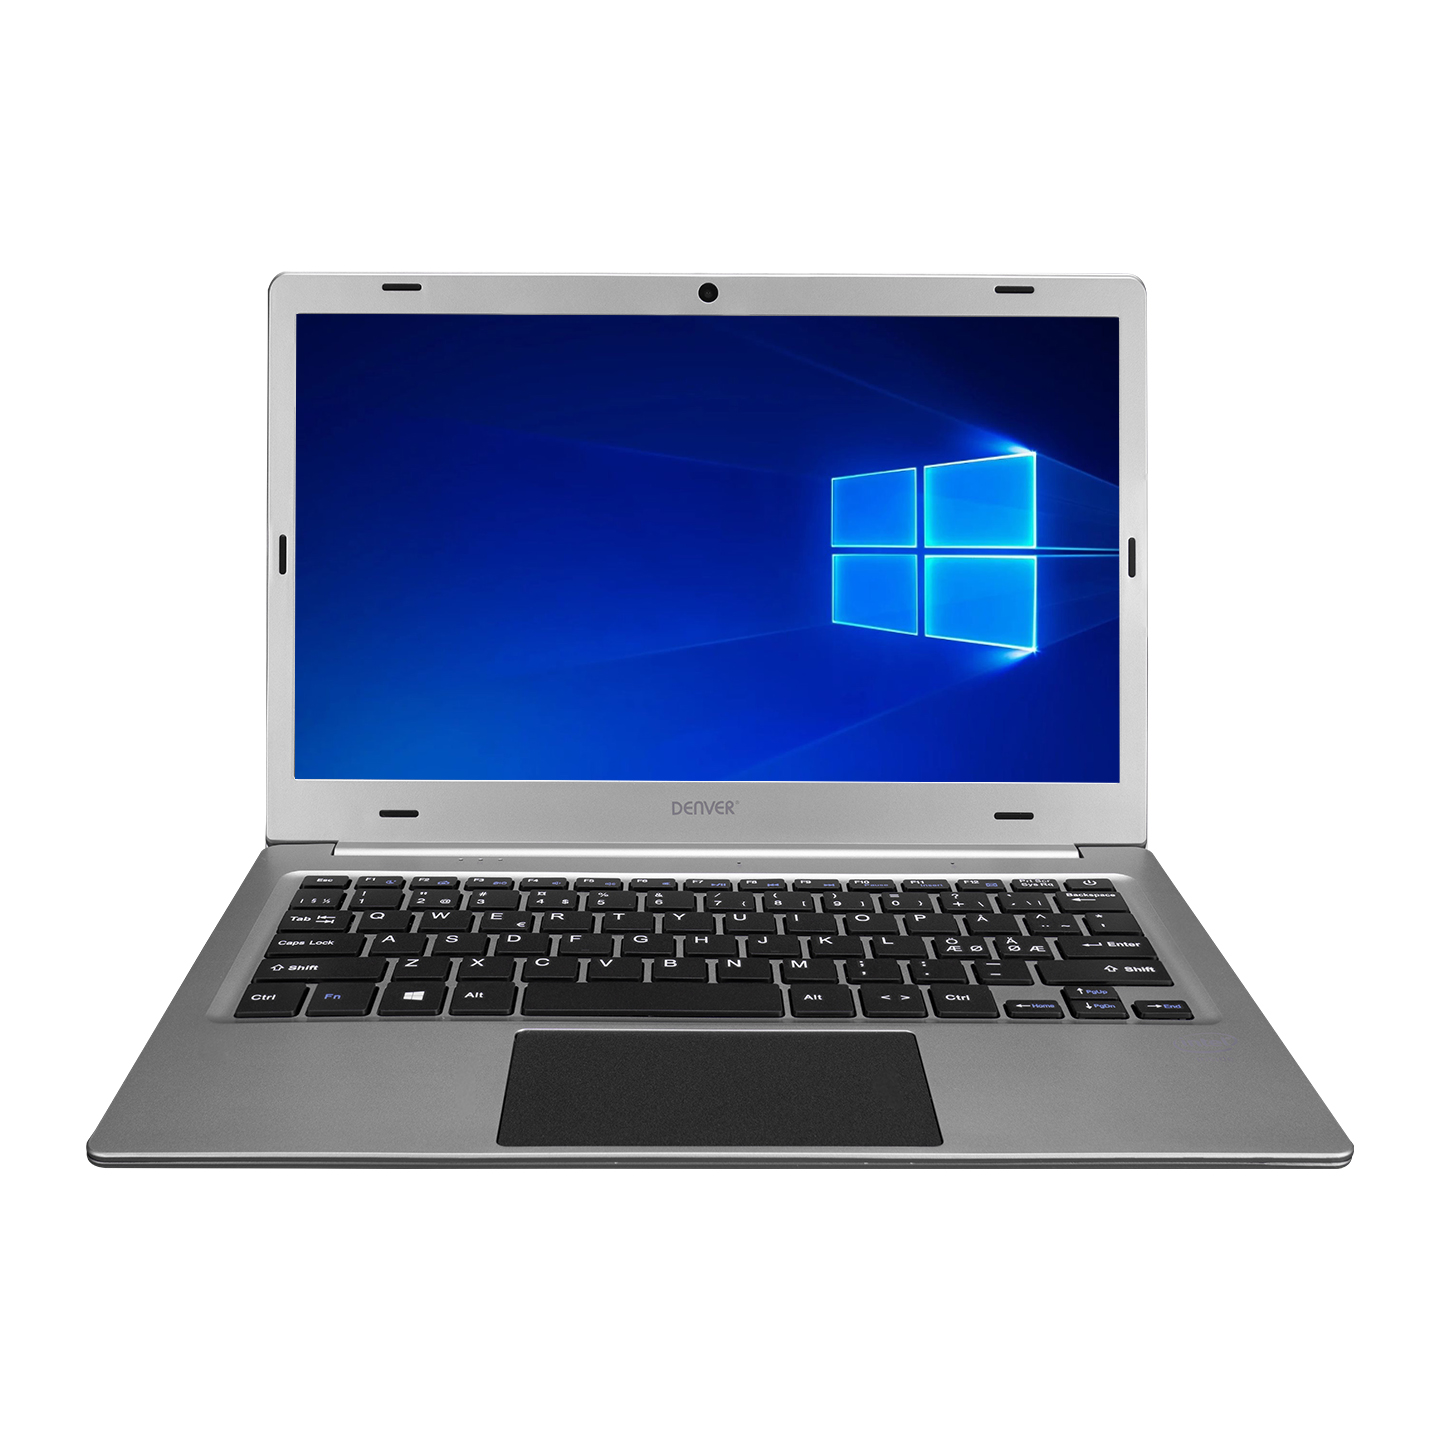 DENVER NBW-11604N 1.83 GHZ Quad Core CPU INTEL CherryTrail 2GB DDR3 ram 32GB 11.6 FULL HD IPS Ekran Notebook